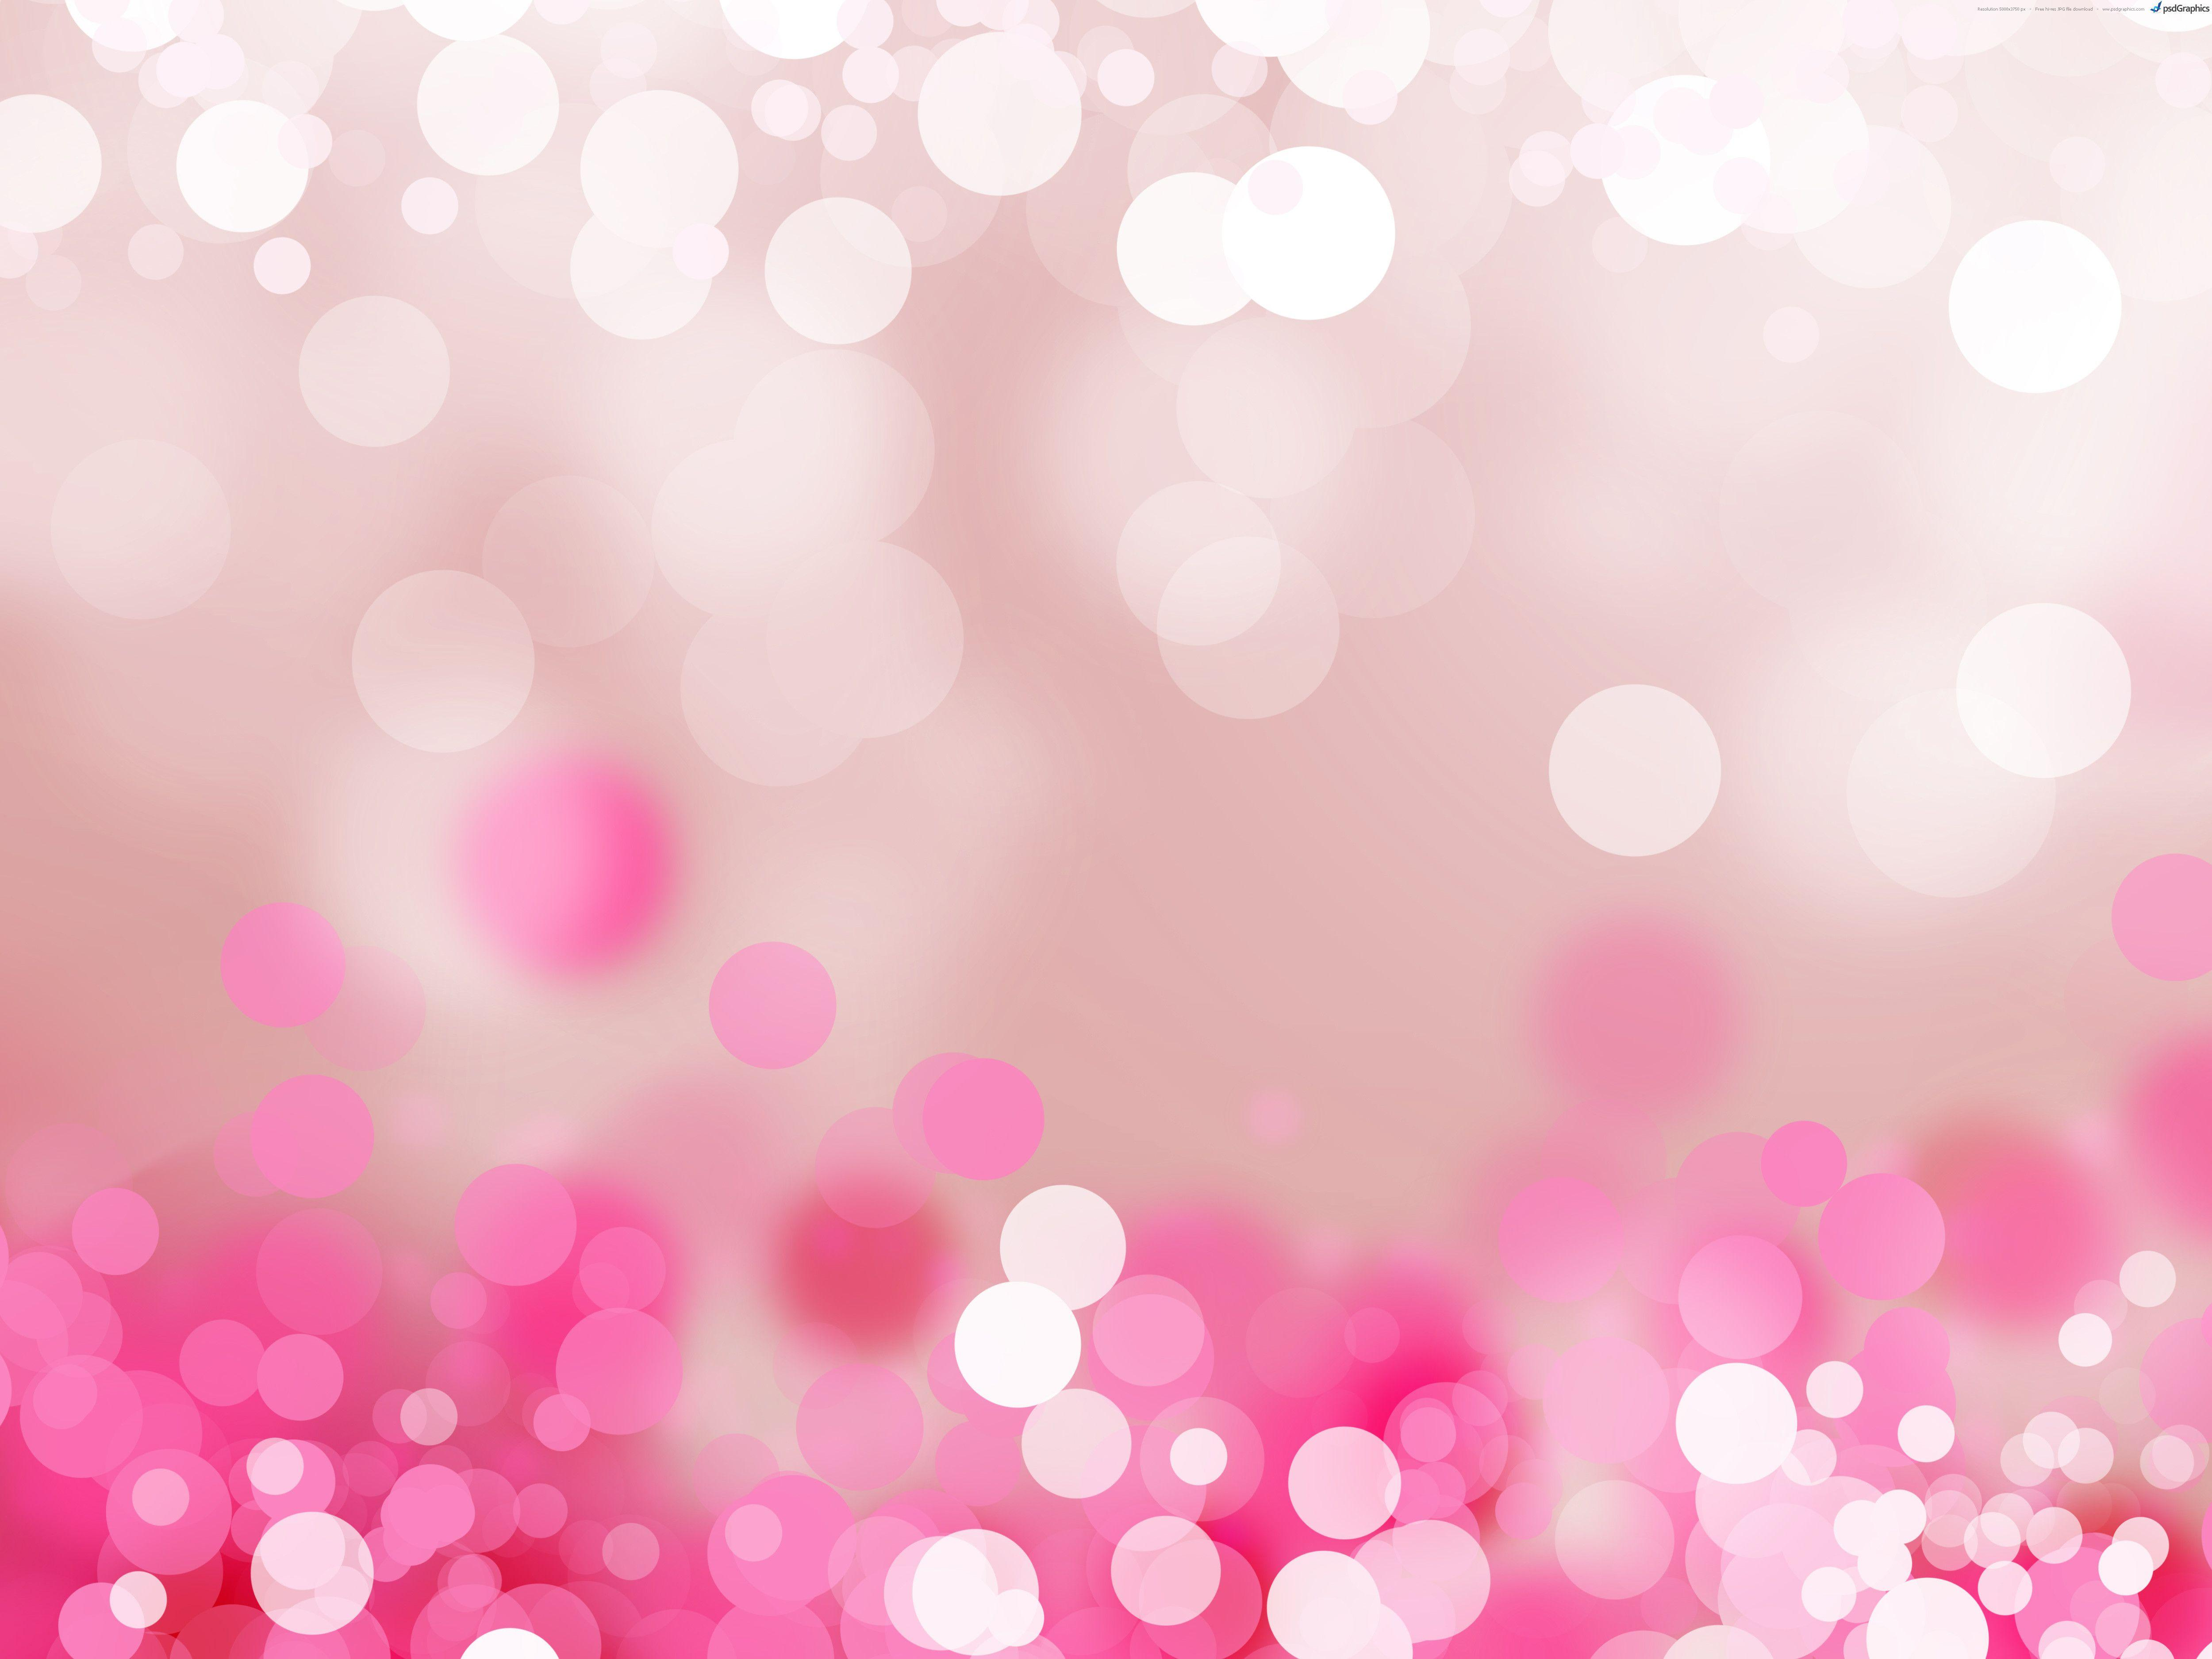 Wallpapers Pink Backgrounds - Wallpaper Cave